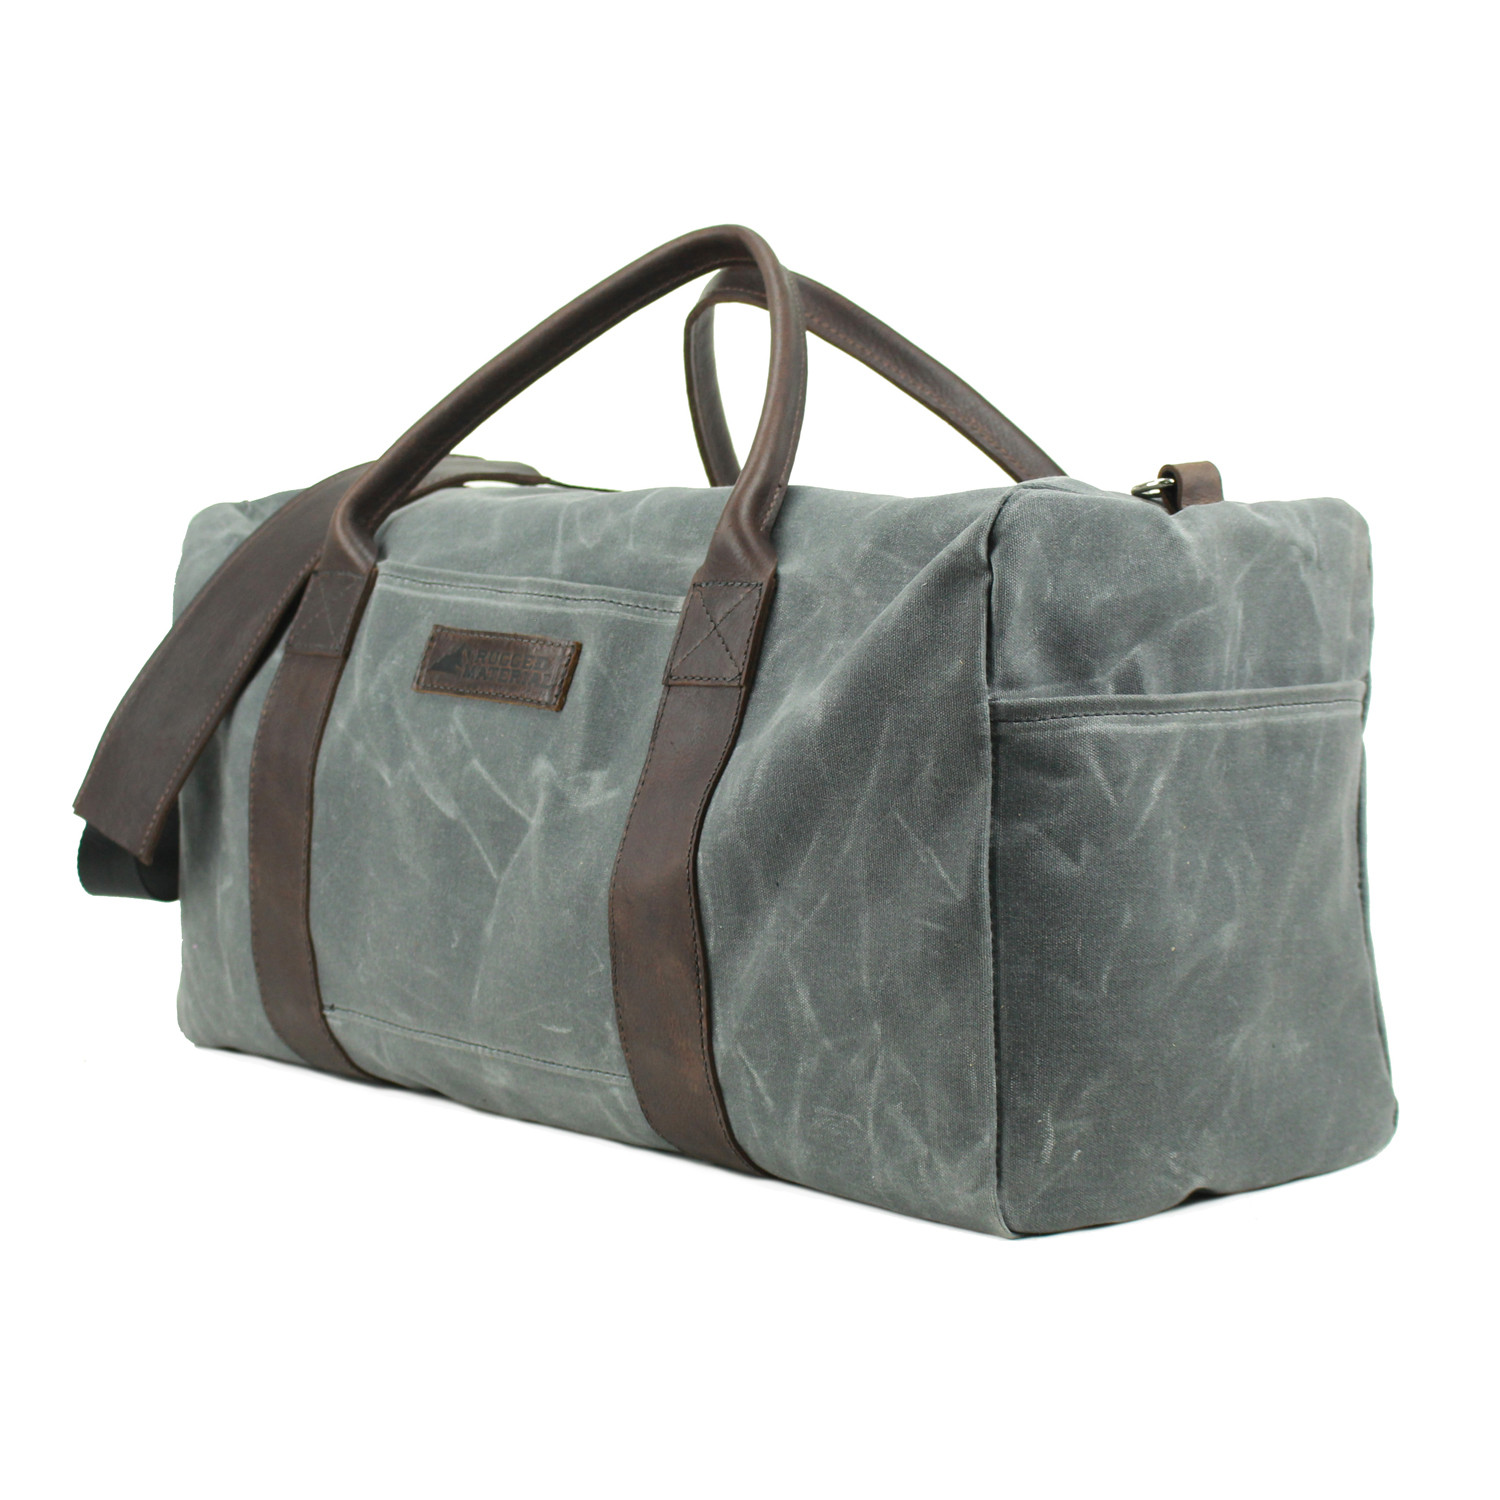 7e0fa25ad1c2 Waxed Canvas Duffle Bag - Rugged Material - Touch of Modern